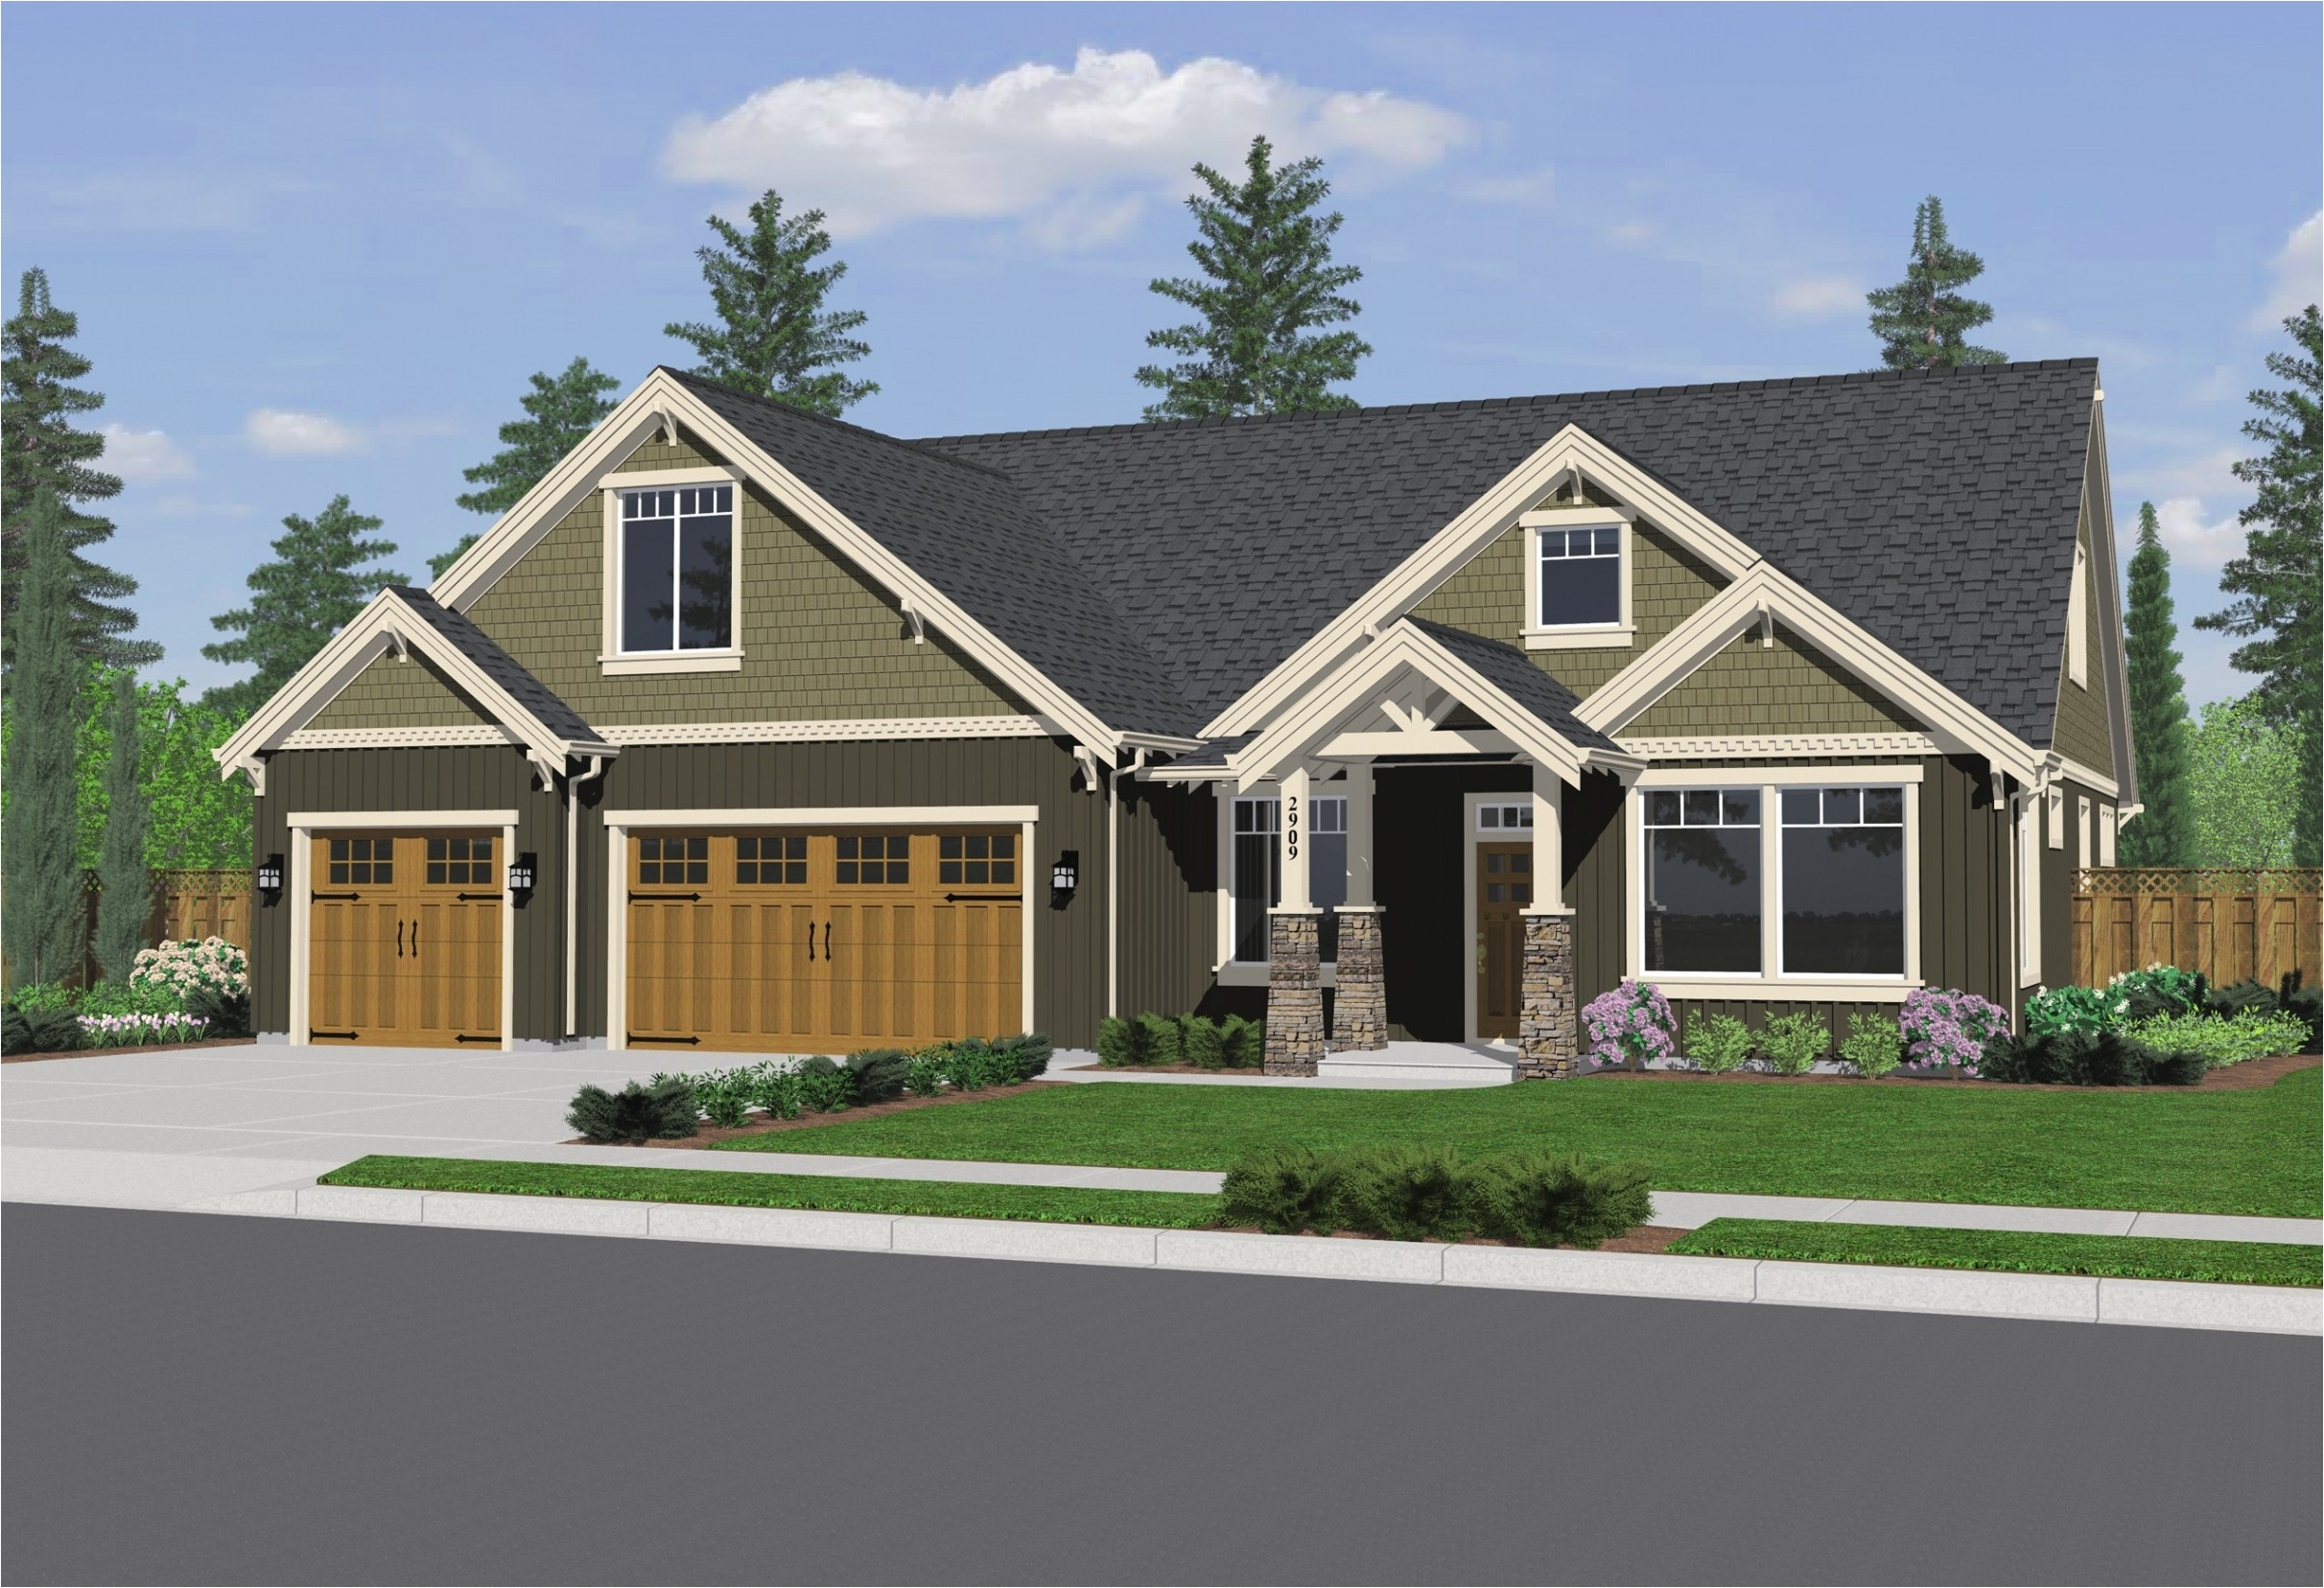 inside garage ideas garagee designs house plans with 3 3 for elegant small home plans with attached garage